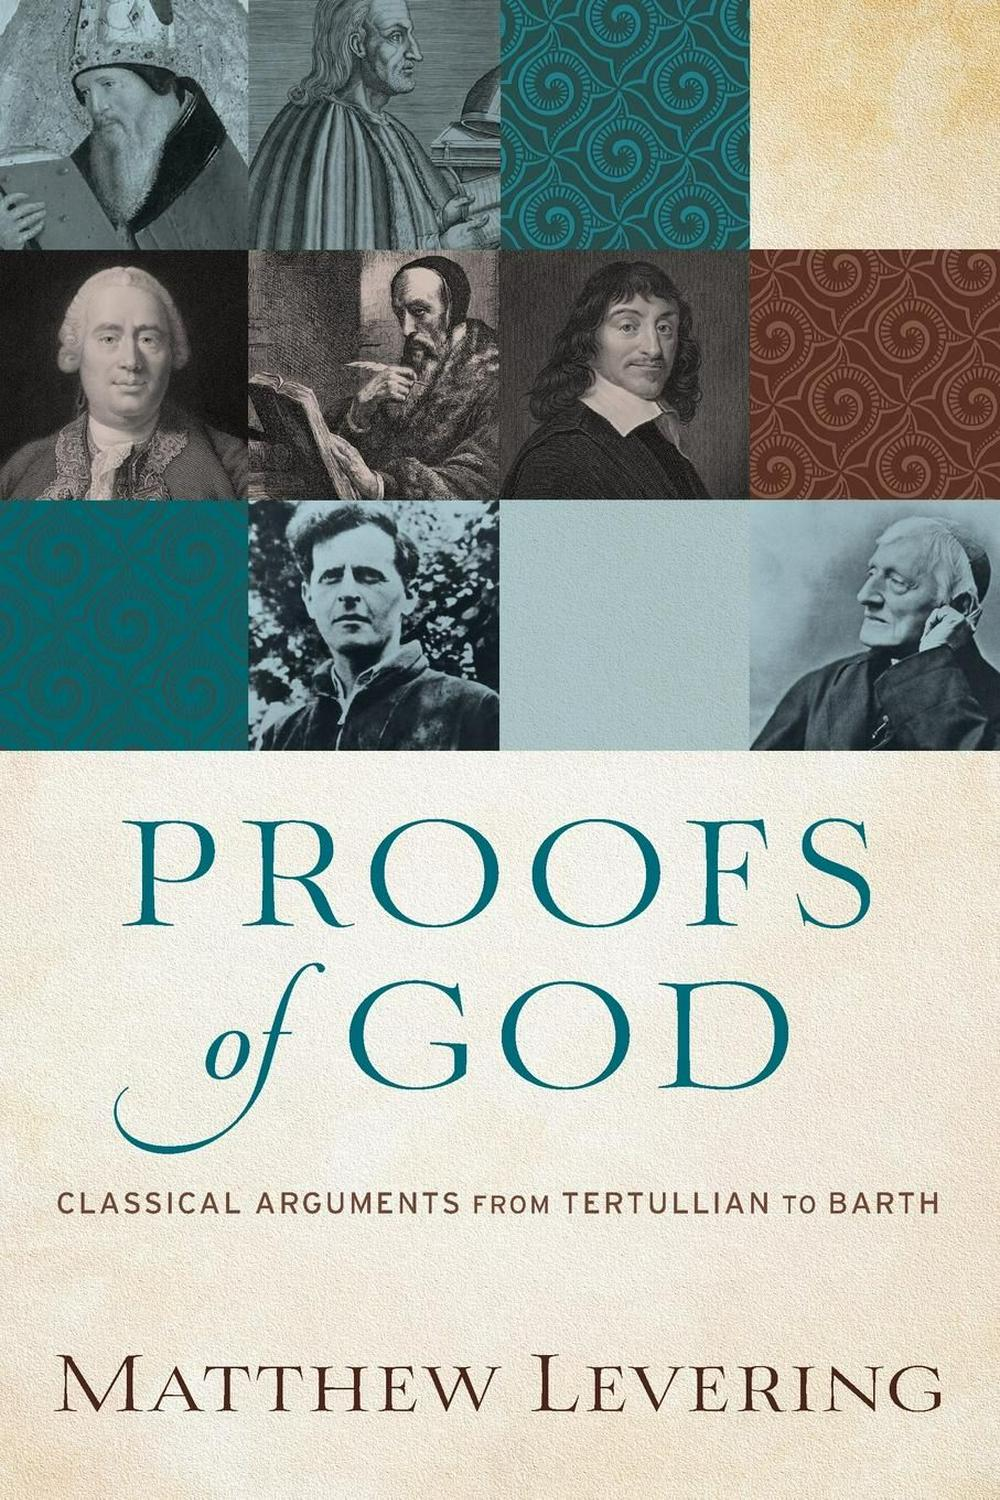 Proofs of GodClassical Arguments from Tertullian to Barth by Matthew Levering, ISBN: 9780801097560